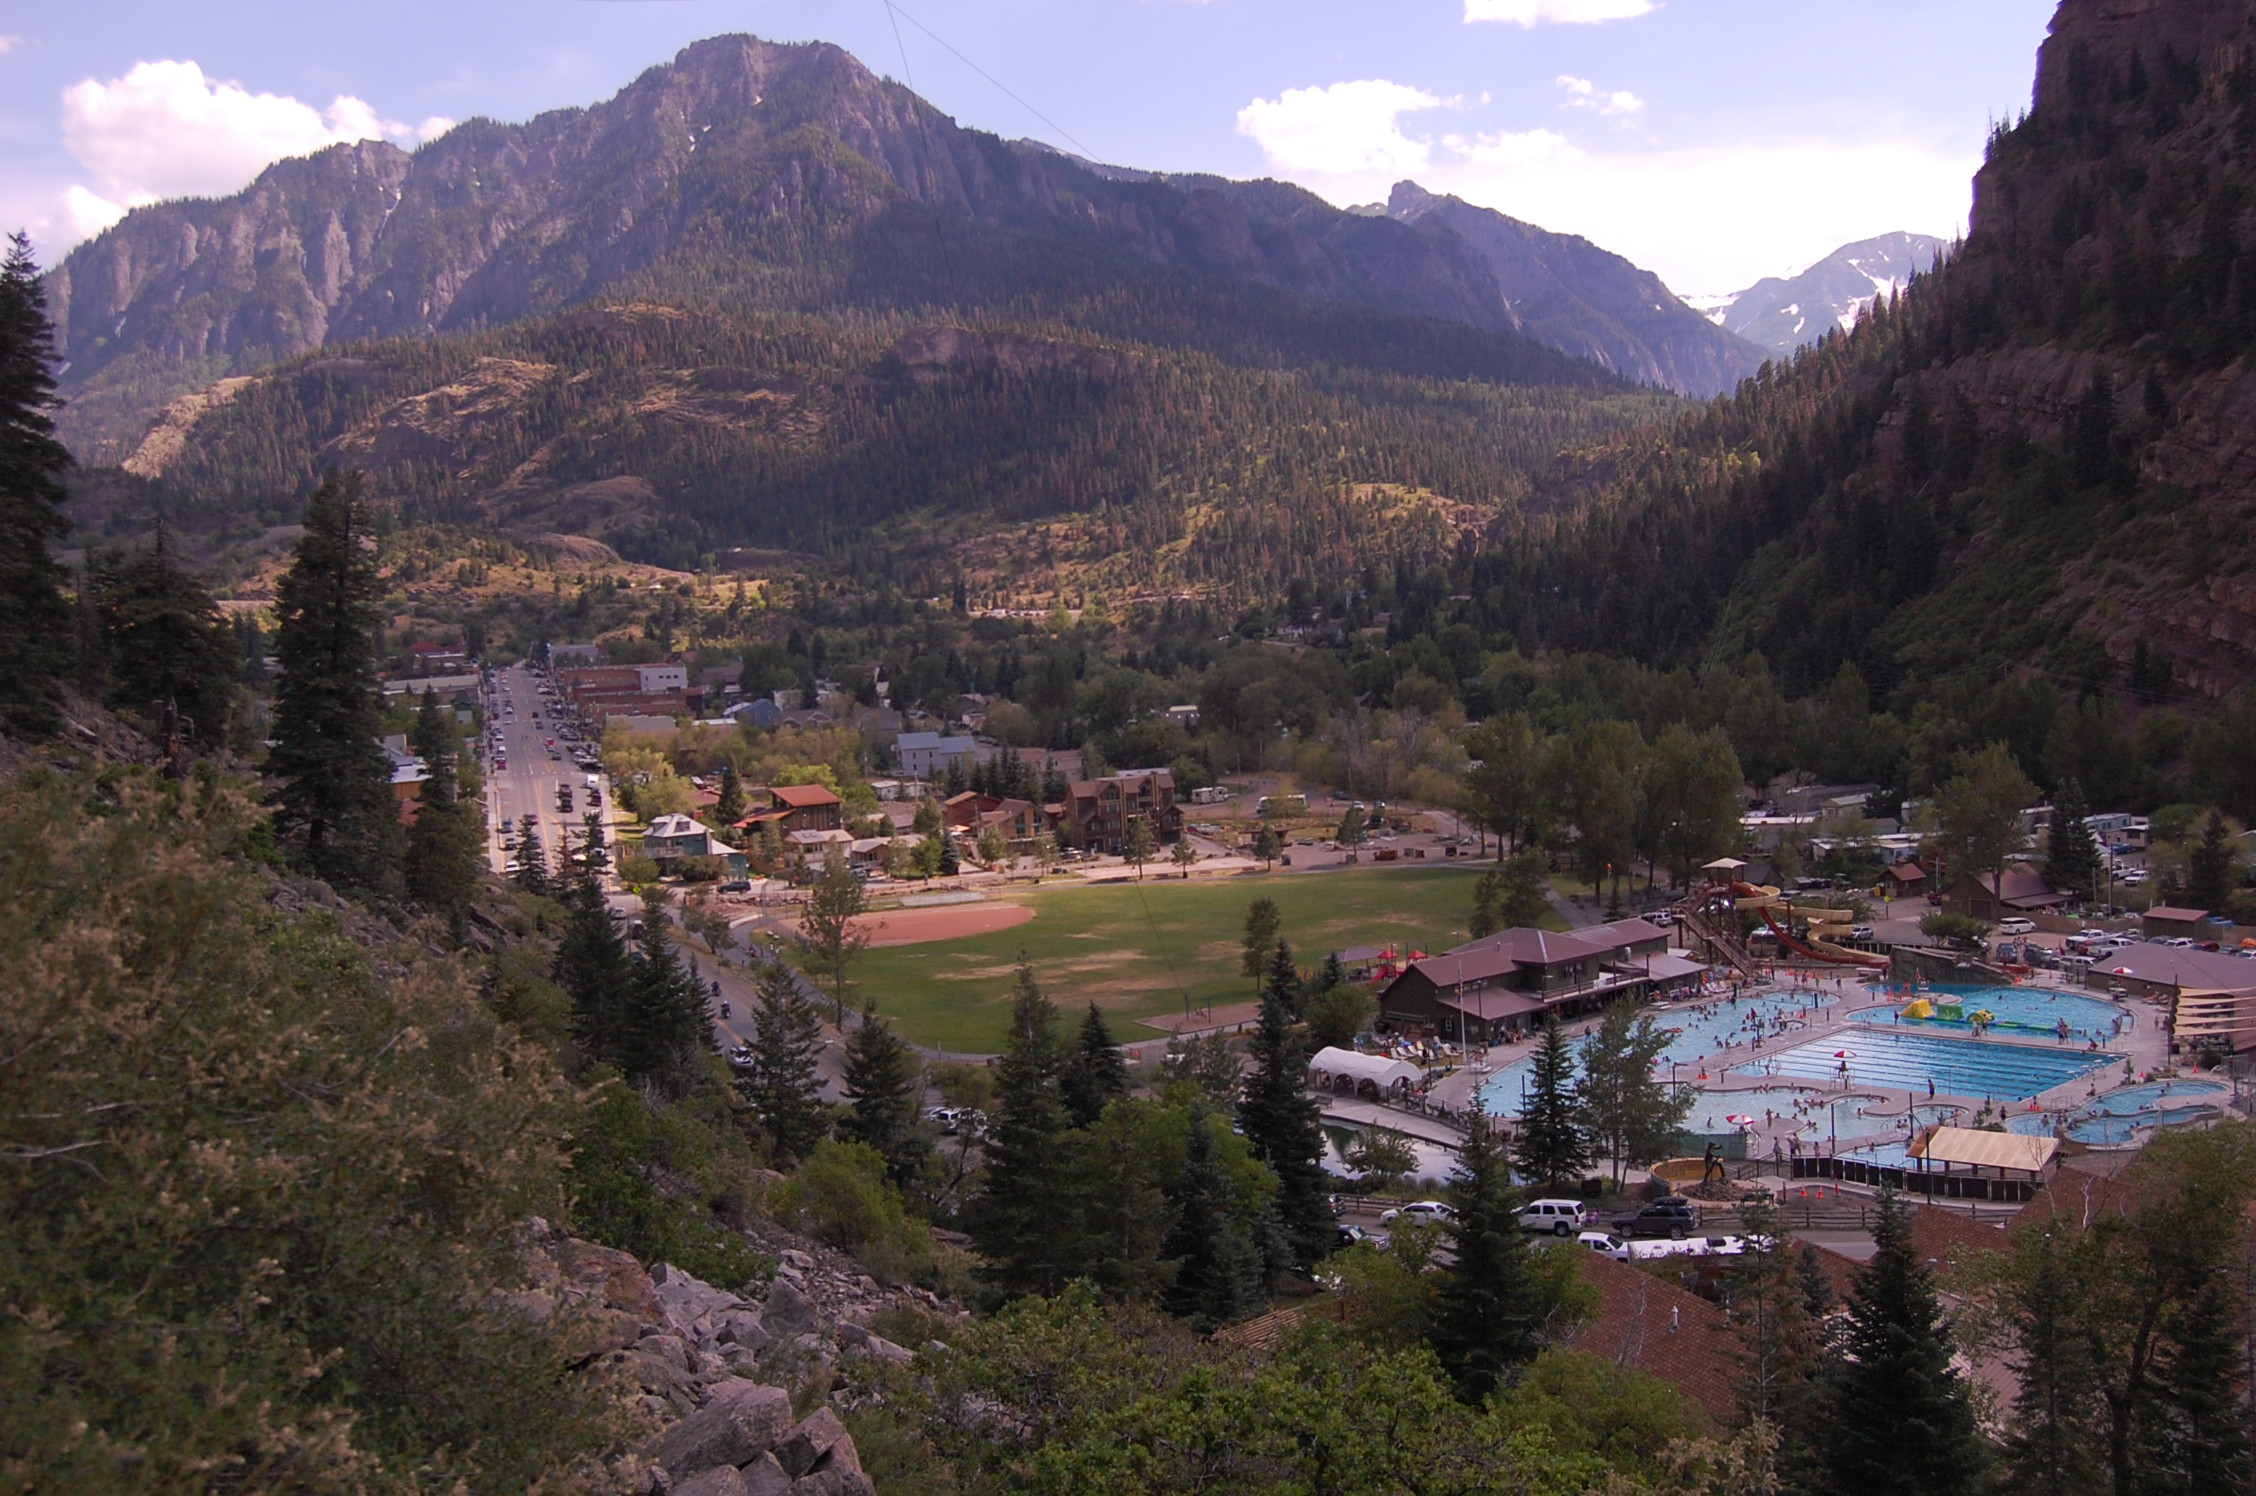 <h1>Ouray Hot Springs</h1>